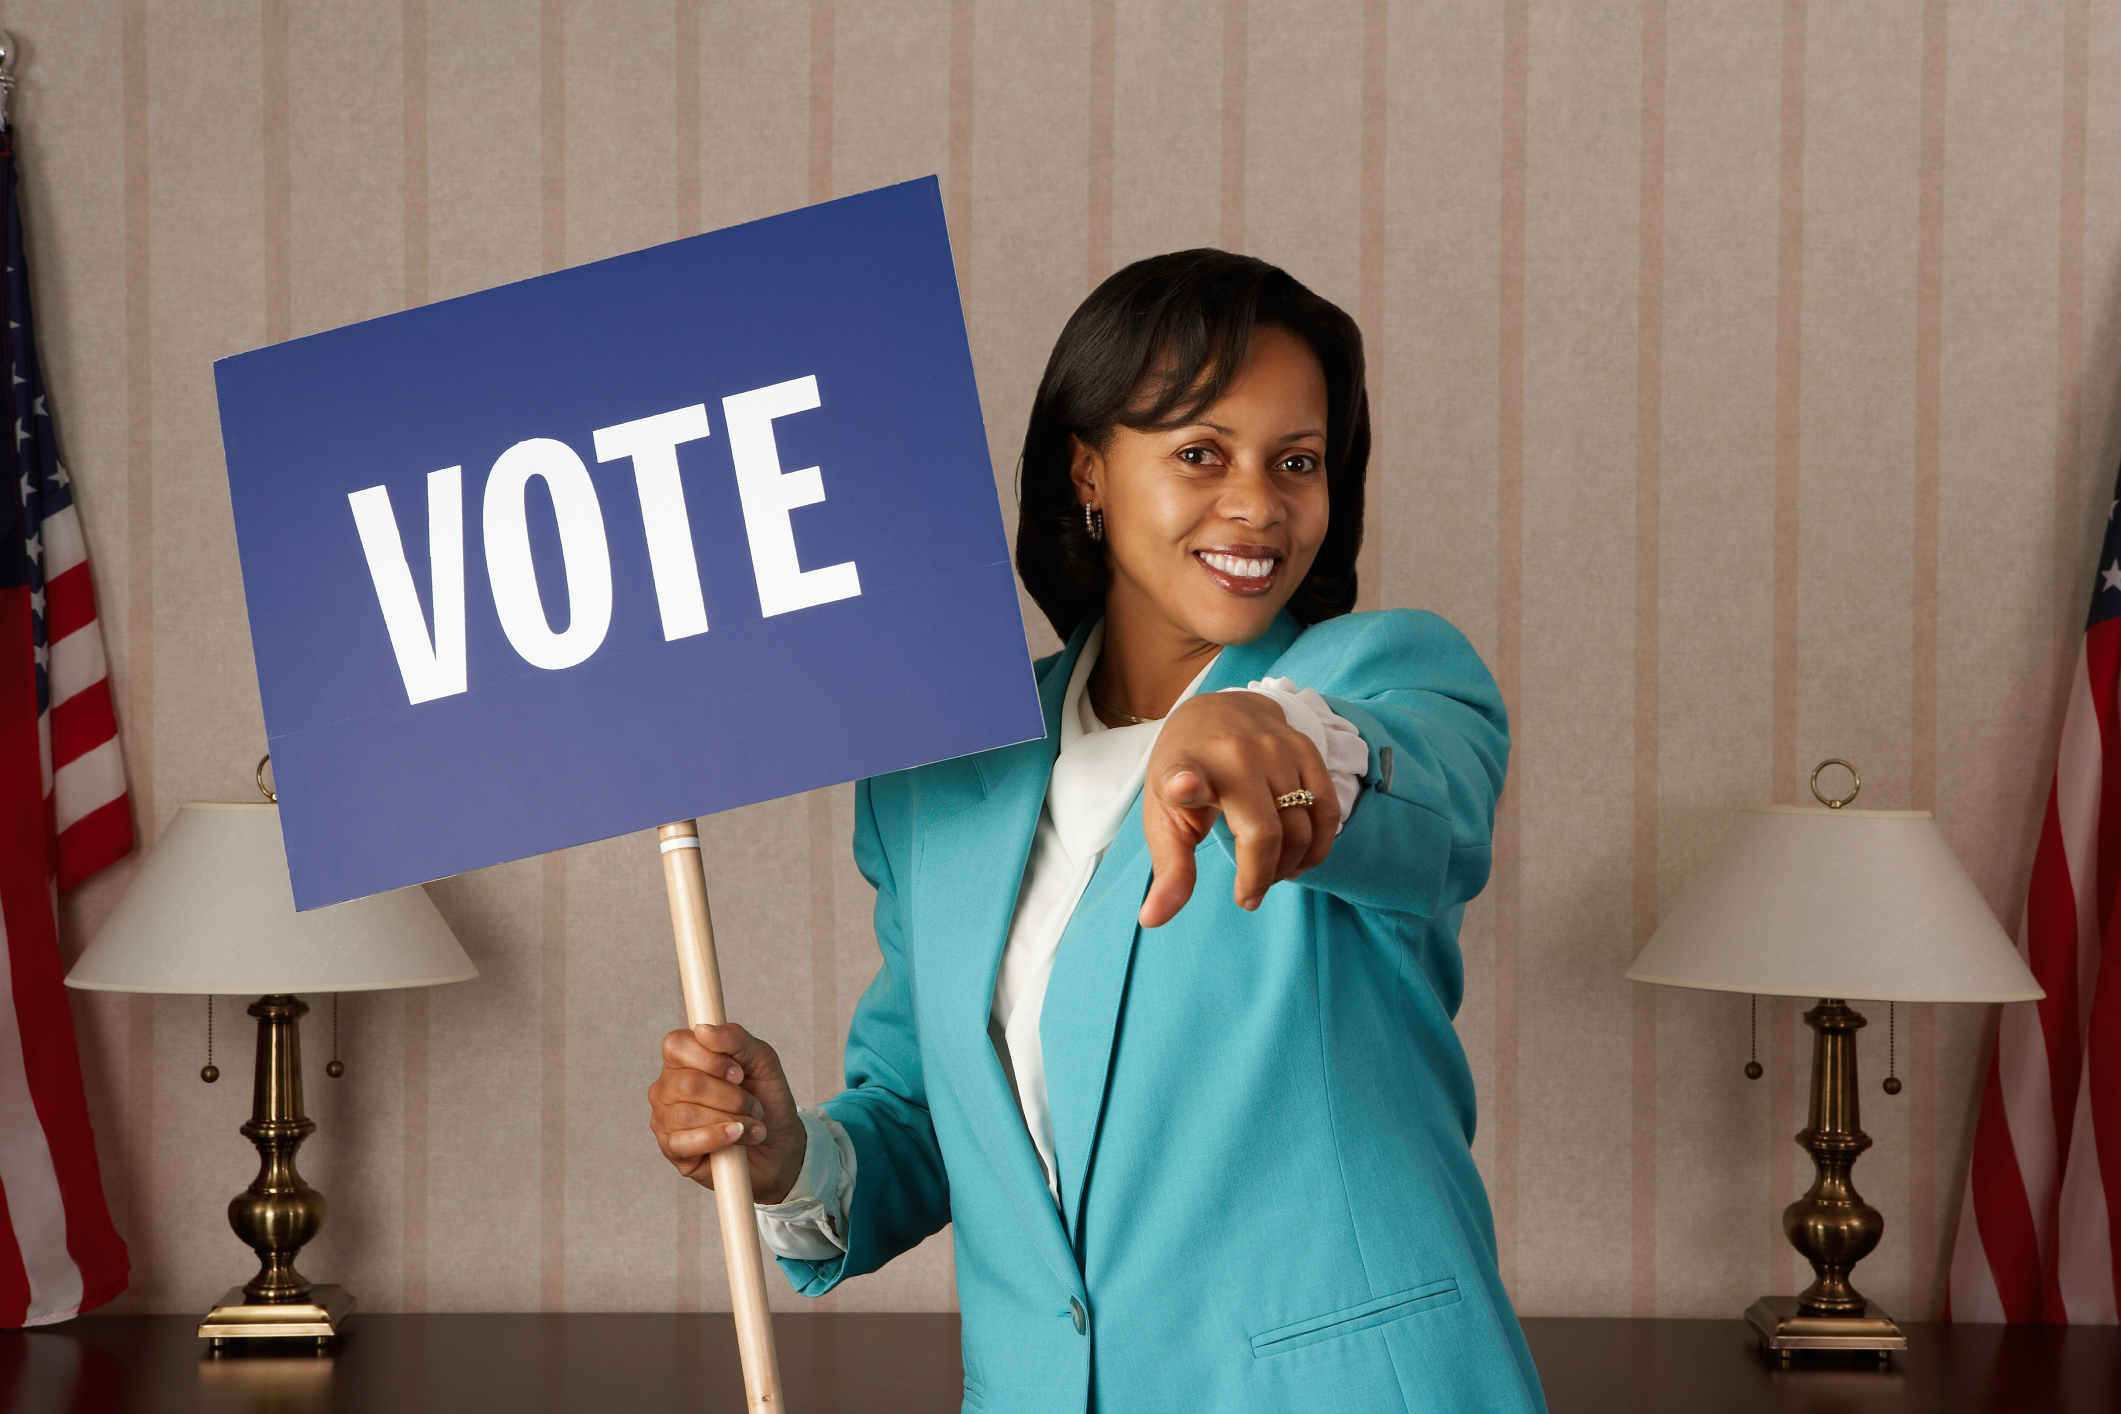 Politician woman holding Vote sign in office